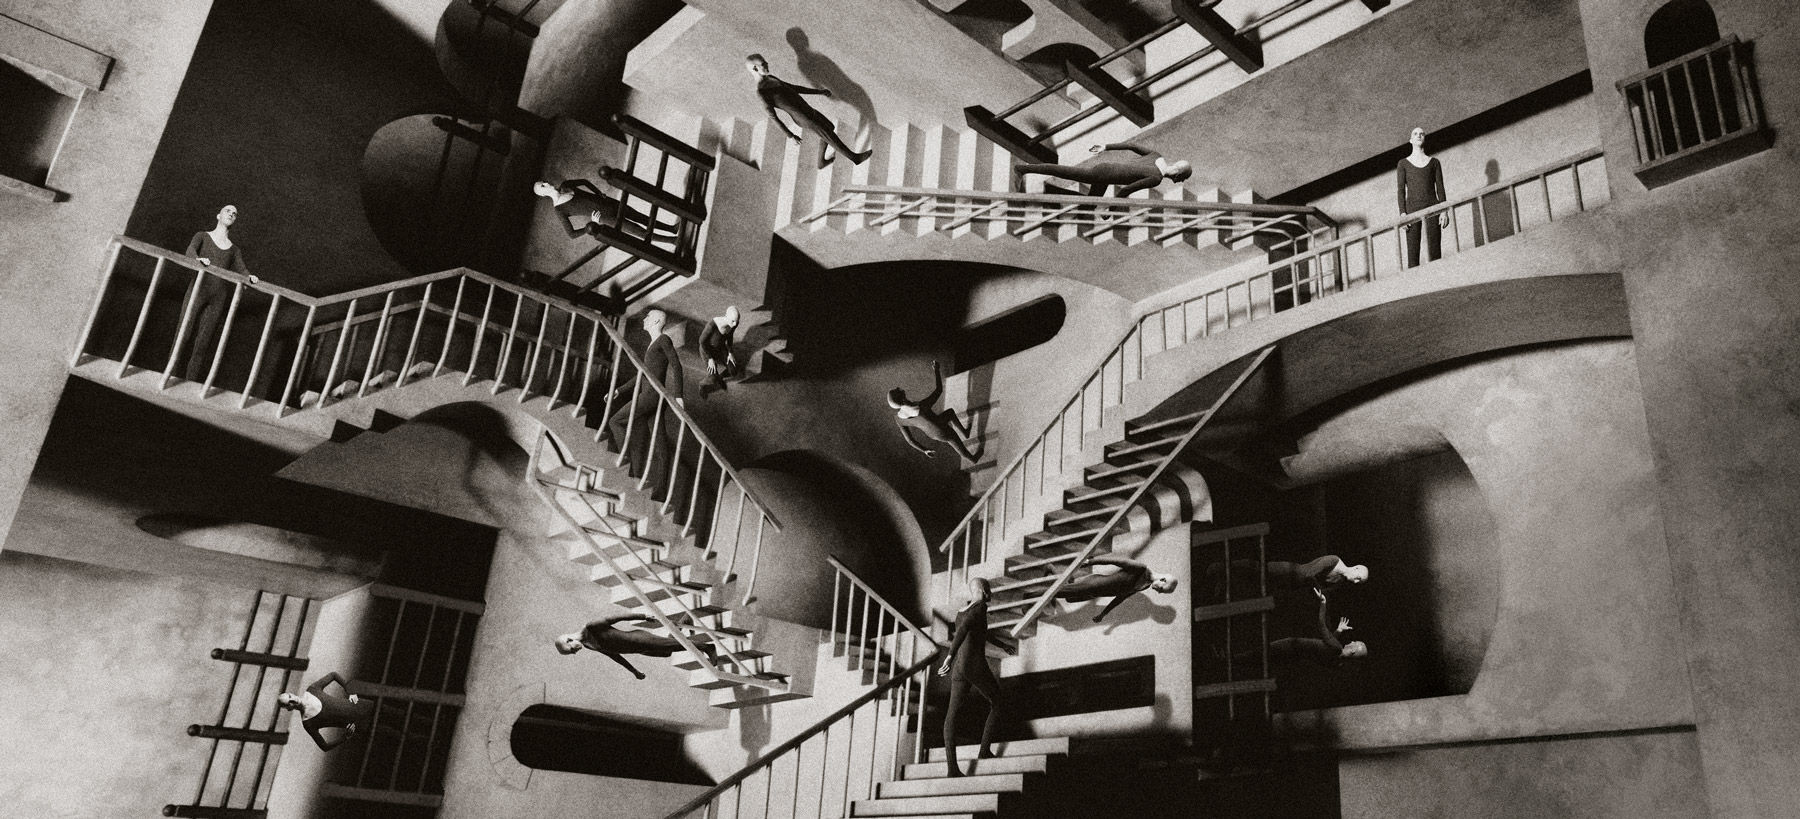 http://galleryhip.com/escher-stairs-wallpaper.html